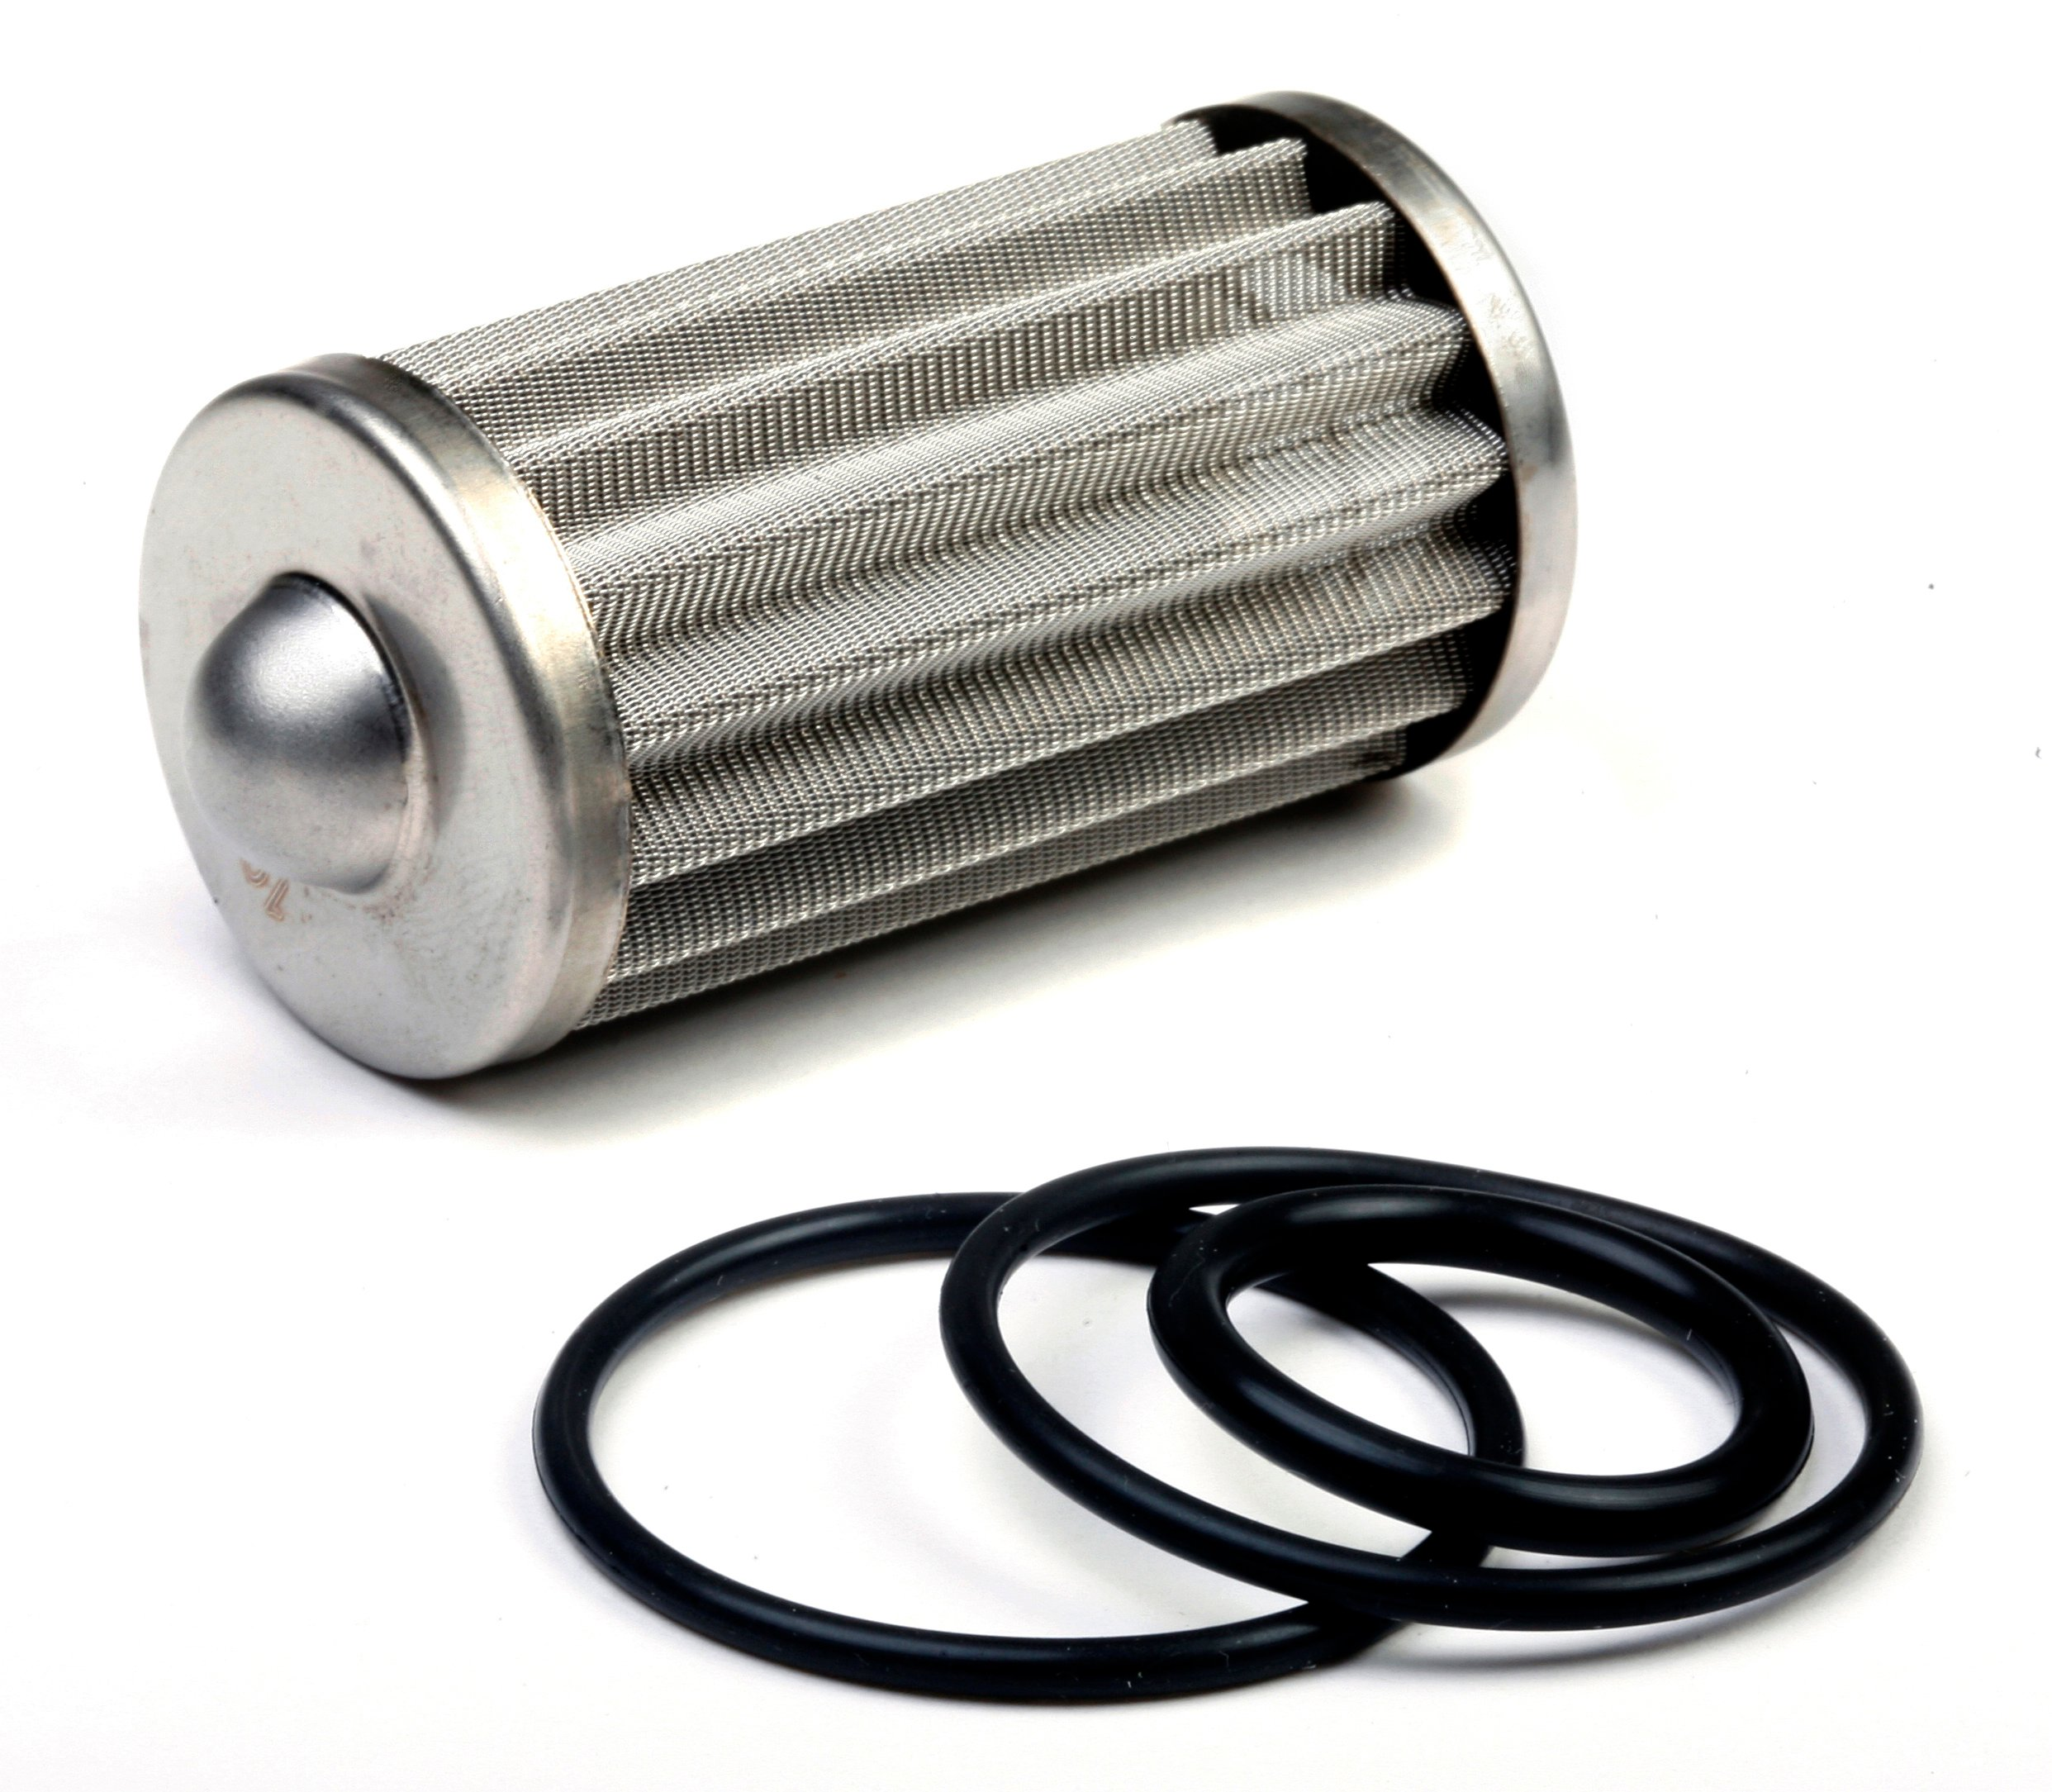 Holley 162-558 Fuel Filter Element and O-ring Kit